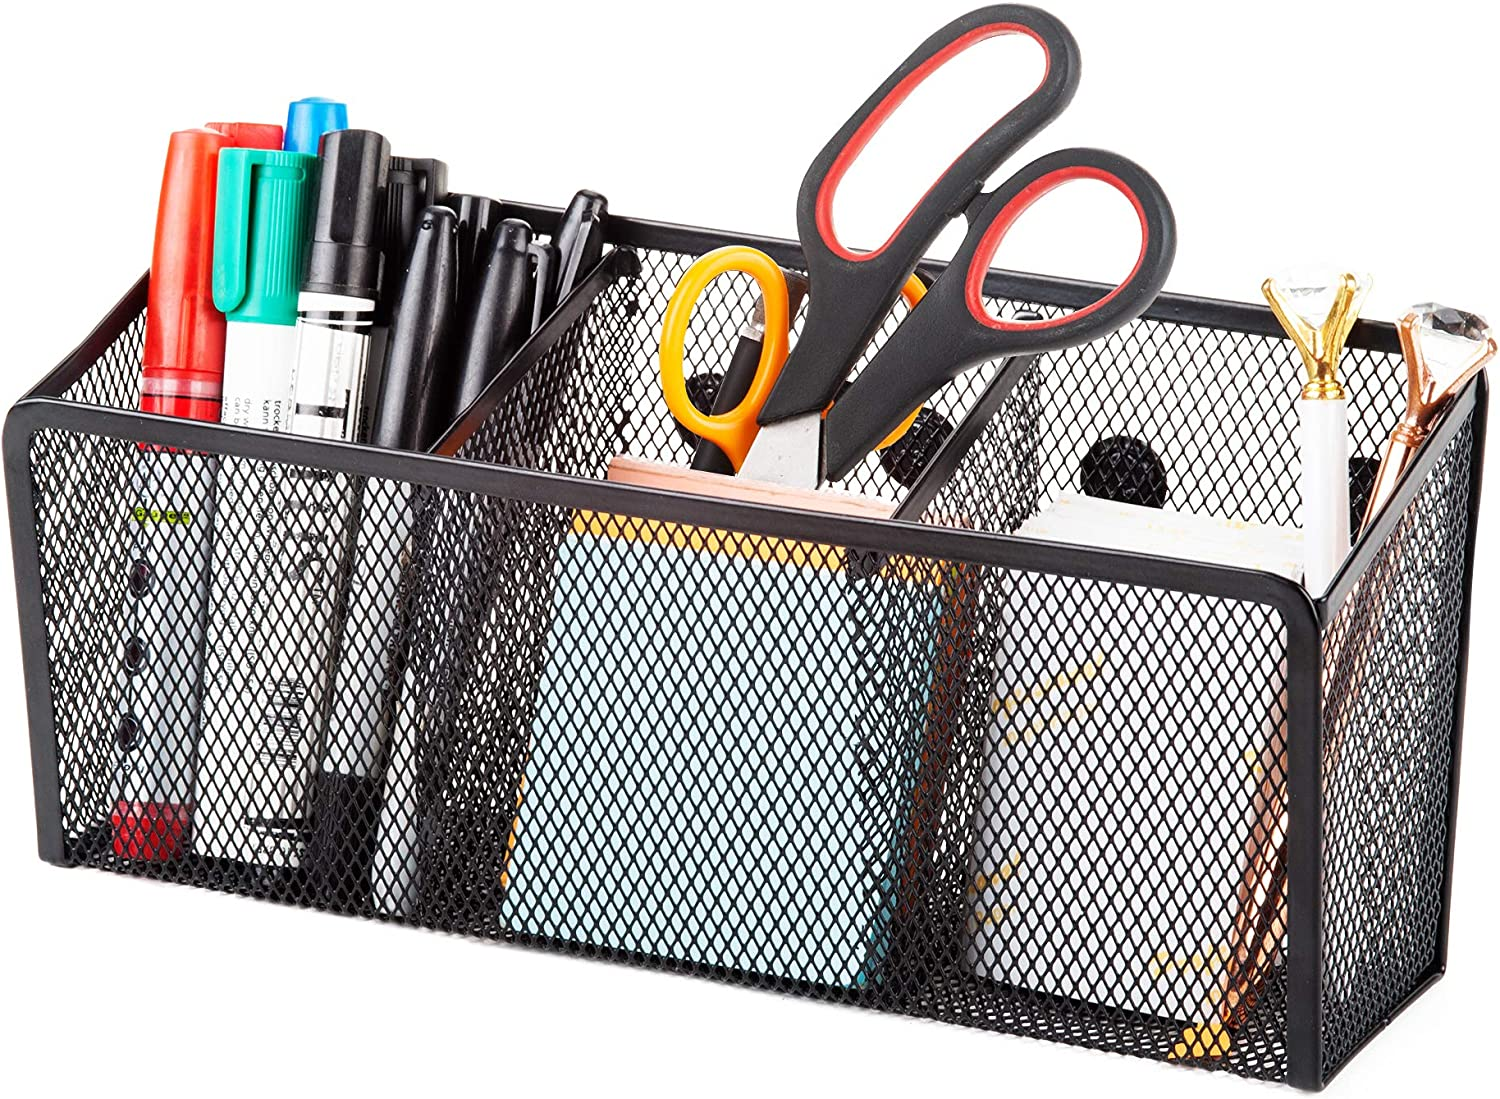 Locker Accessories 3 Magnetic Pencil Holder Magnetic Storage Basket with 3 Generous Compartments Organizer and Semi-Circular Magnetic Mesh Pen Cups for Whiteboard